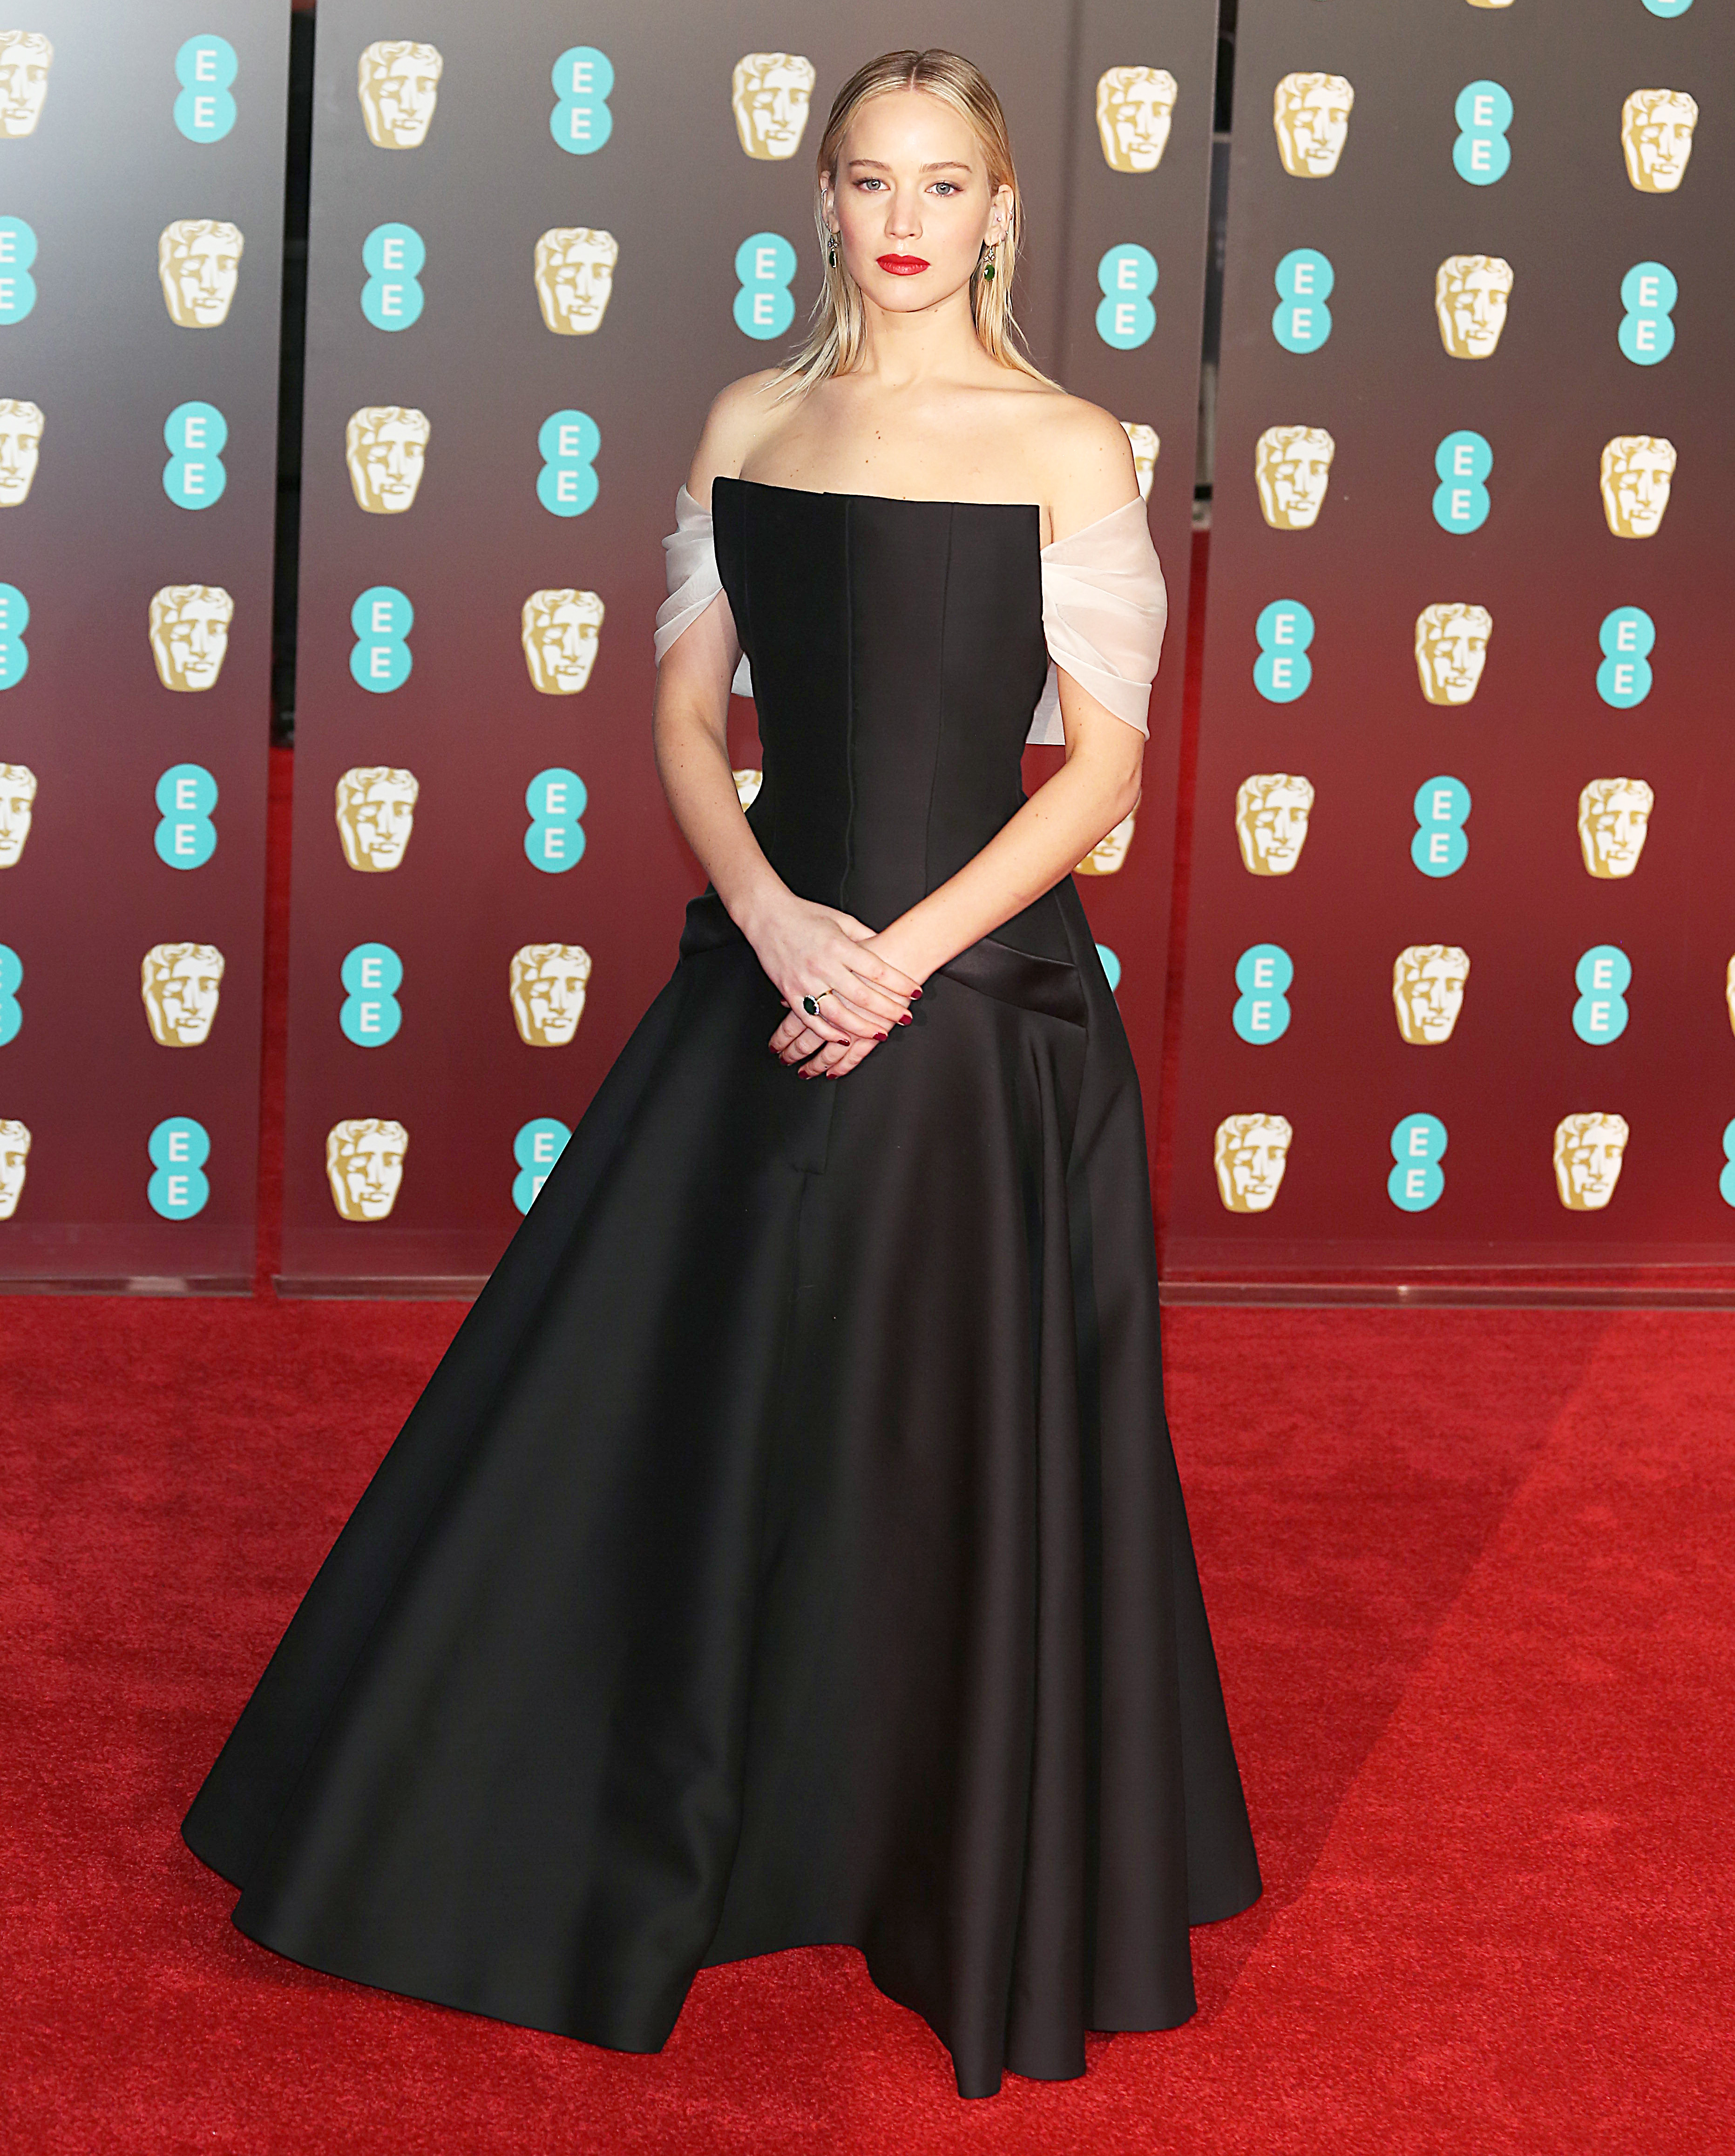 EE British Academy Film Awards 2018 (BAFTAs), Royal Albert Hall, London UK, 18 February 2018, Photo by Brett D. Cove <P> Pictured: Jennifer Lawrence <B>Ref: SPL1661265  190218  </B><BR/> Picture by: Brett D. Cove / Splash News<BR/> </P><P> <B>Splash News and Pictures</B><BR/> Los Angeles:310-821-2666<BR/> New York:212-619-2666<BR/> London:870-934-2666<BR/> <span id=